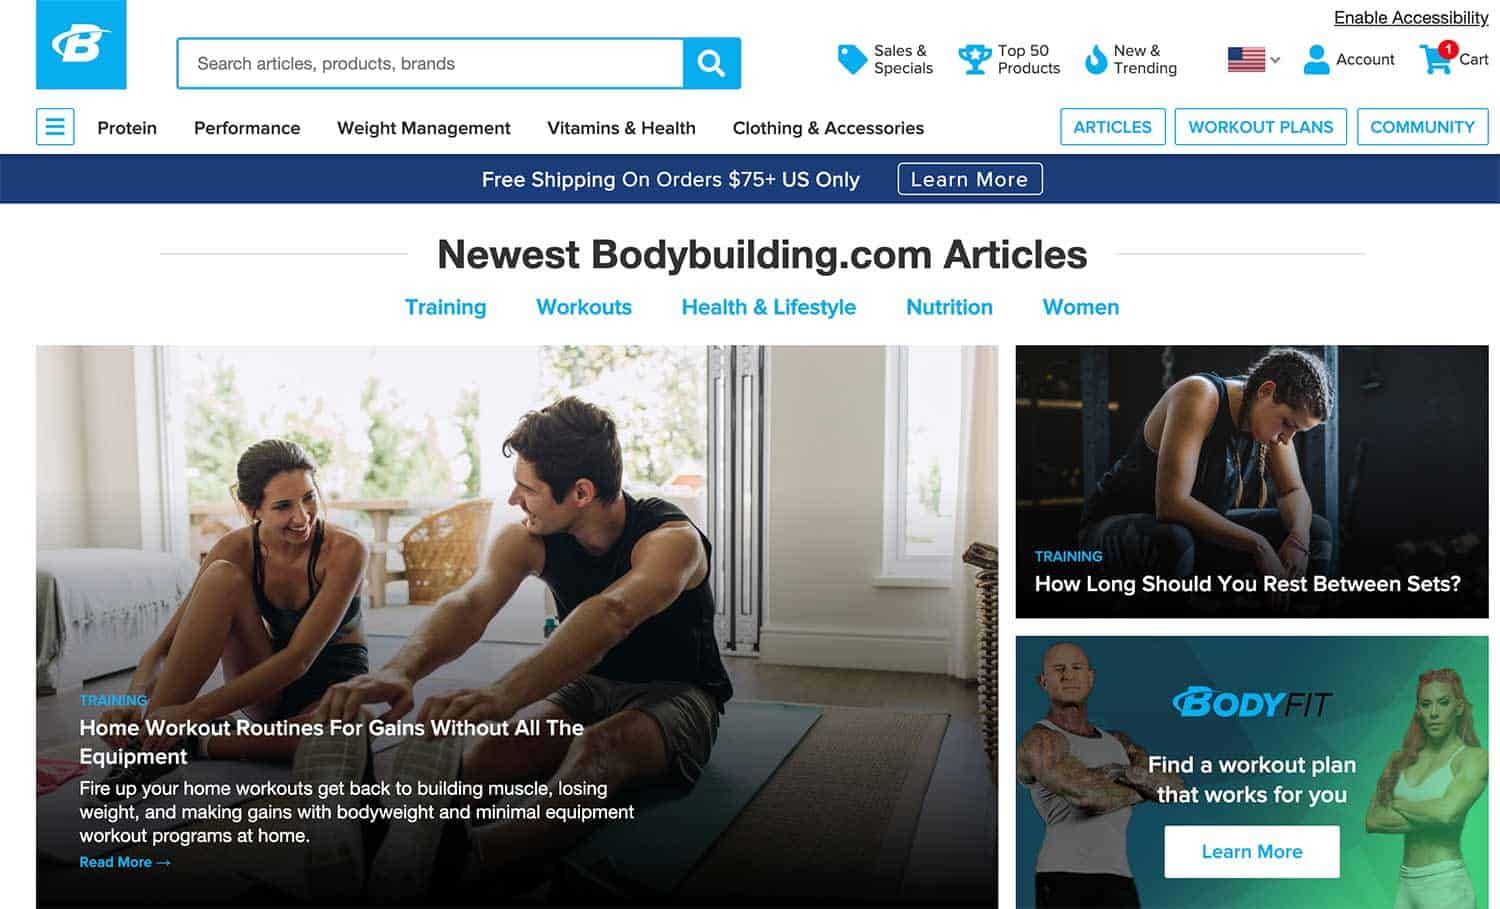 Types of Blogs That Make Money - Health and Fitness